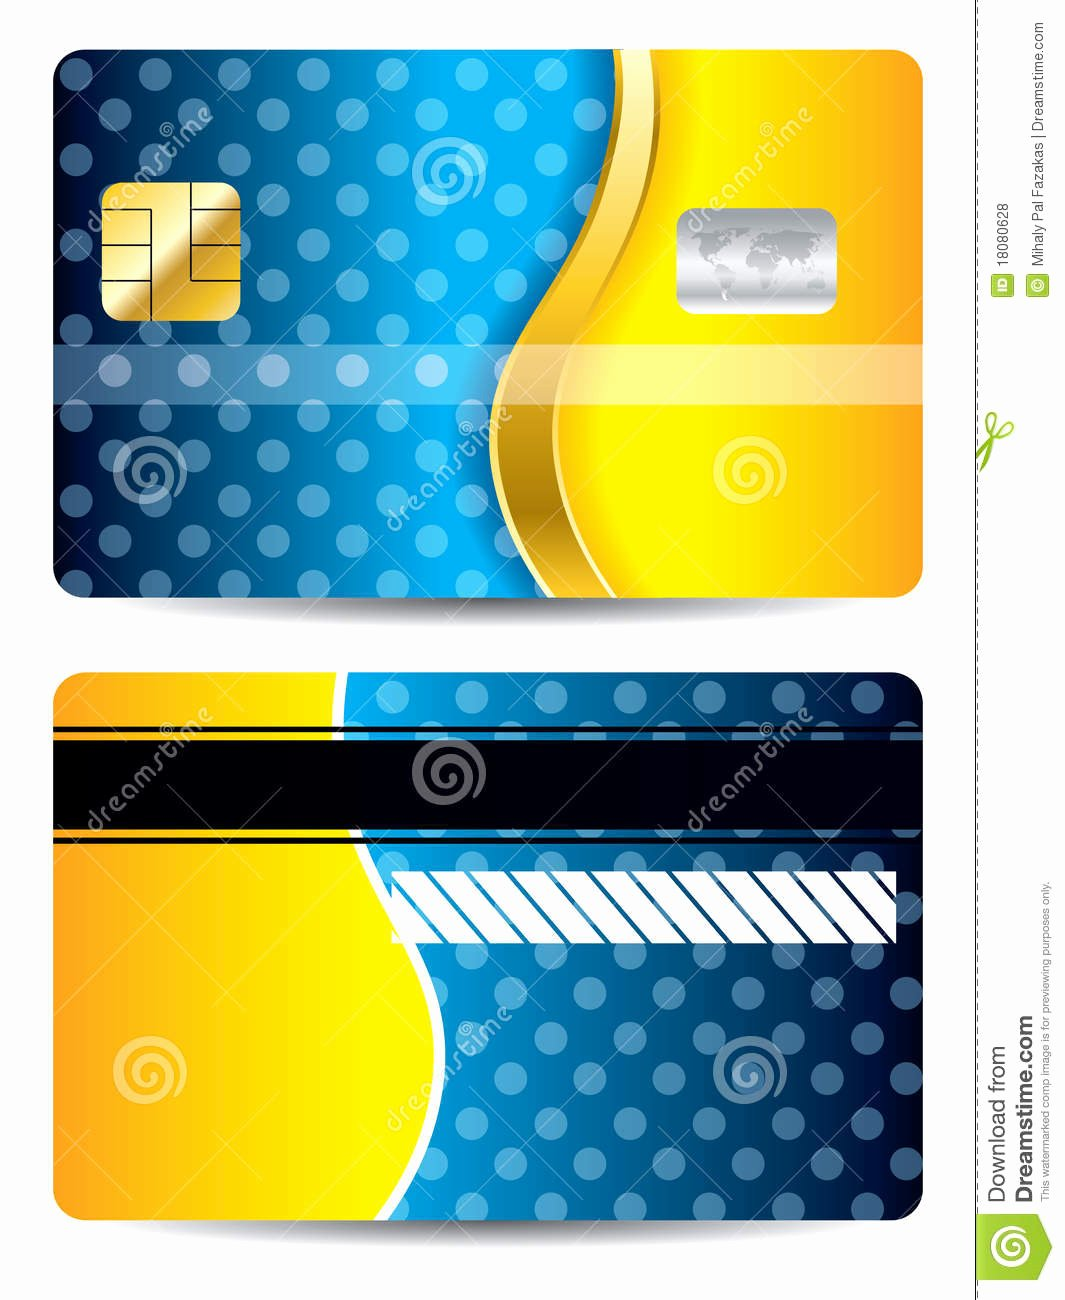 Cool Debit Card Designs Elegant Cool Blue and orange Credit Card Stock Vector